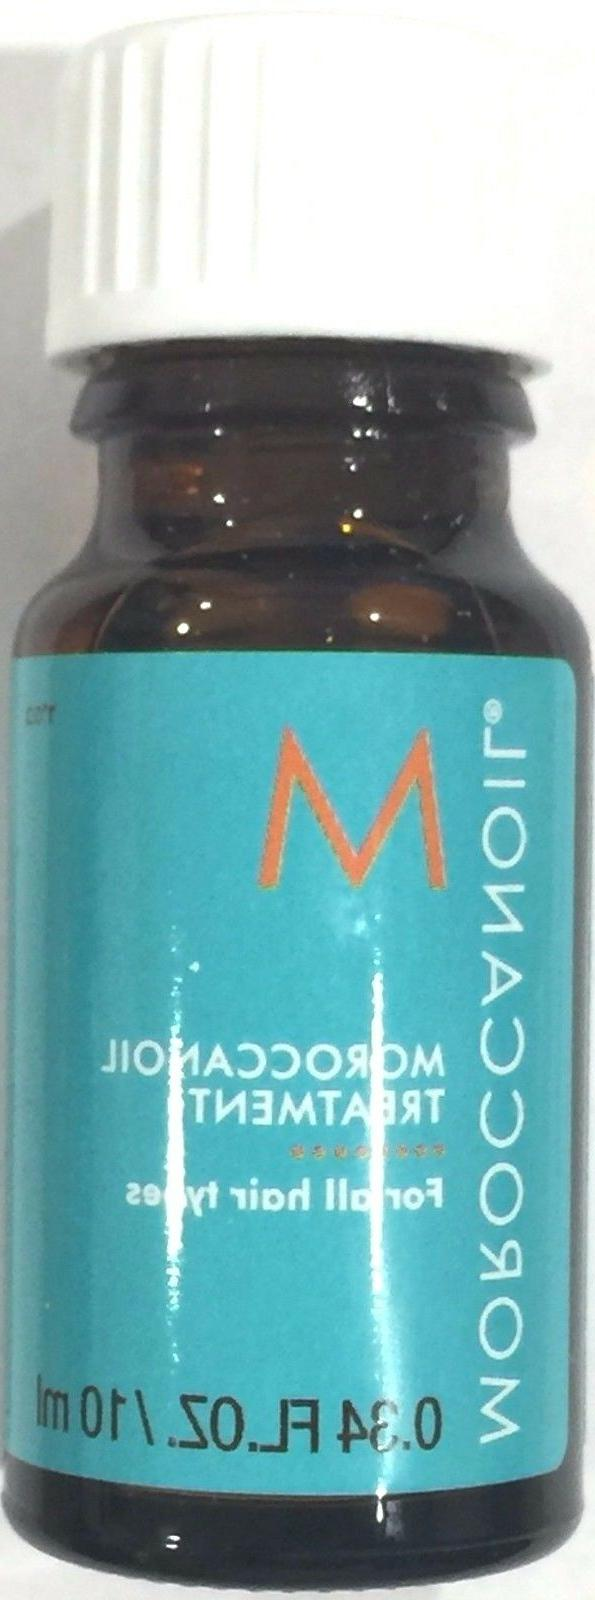 treatment for all hair types 0 34oz